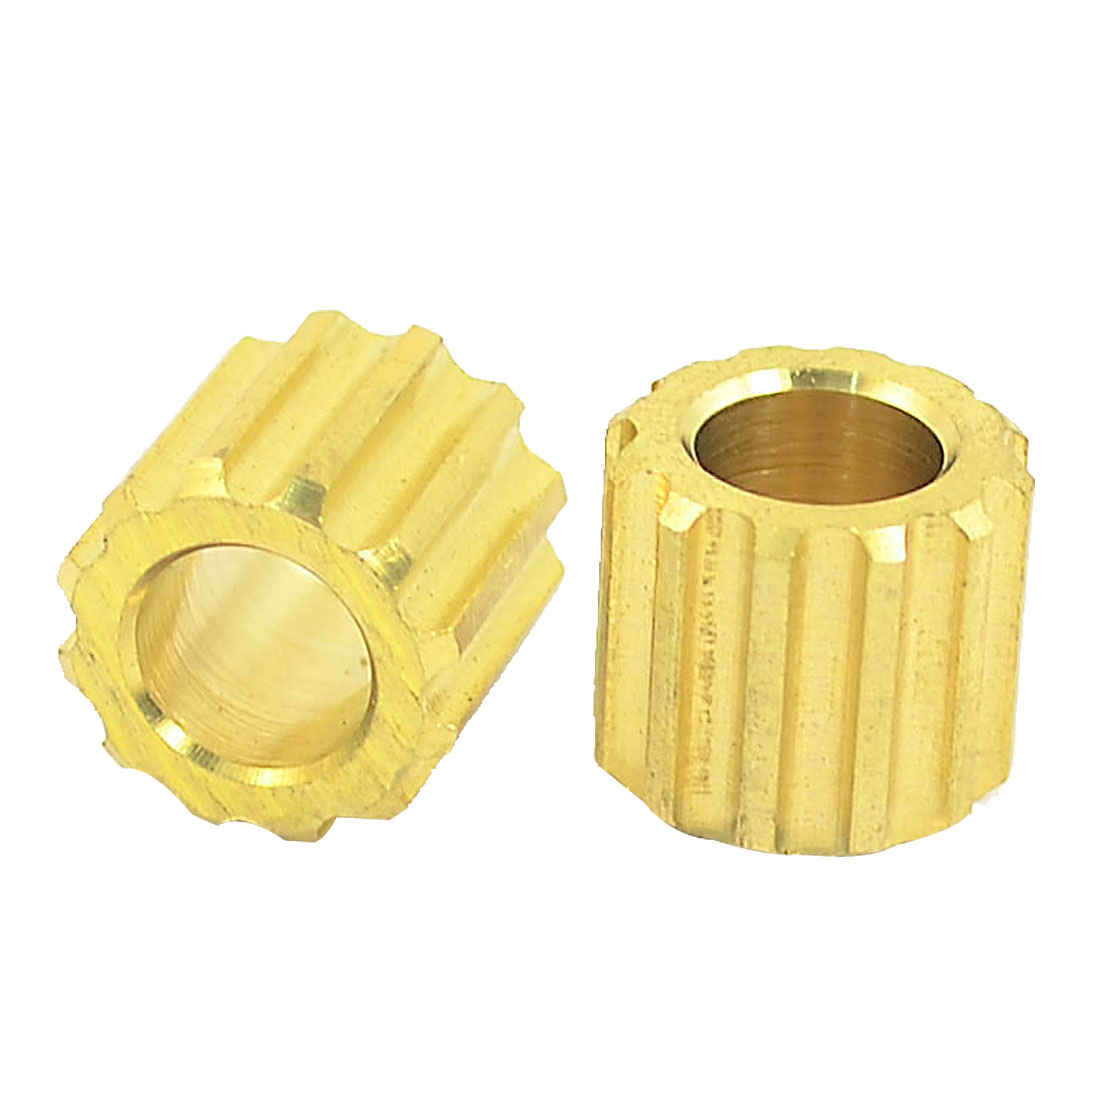 7mm Pore Dia 12 Tooth Motor Shaft Gear DIY Toys Parts Brass Tone 2PCS